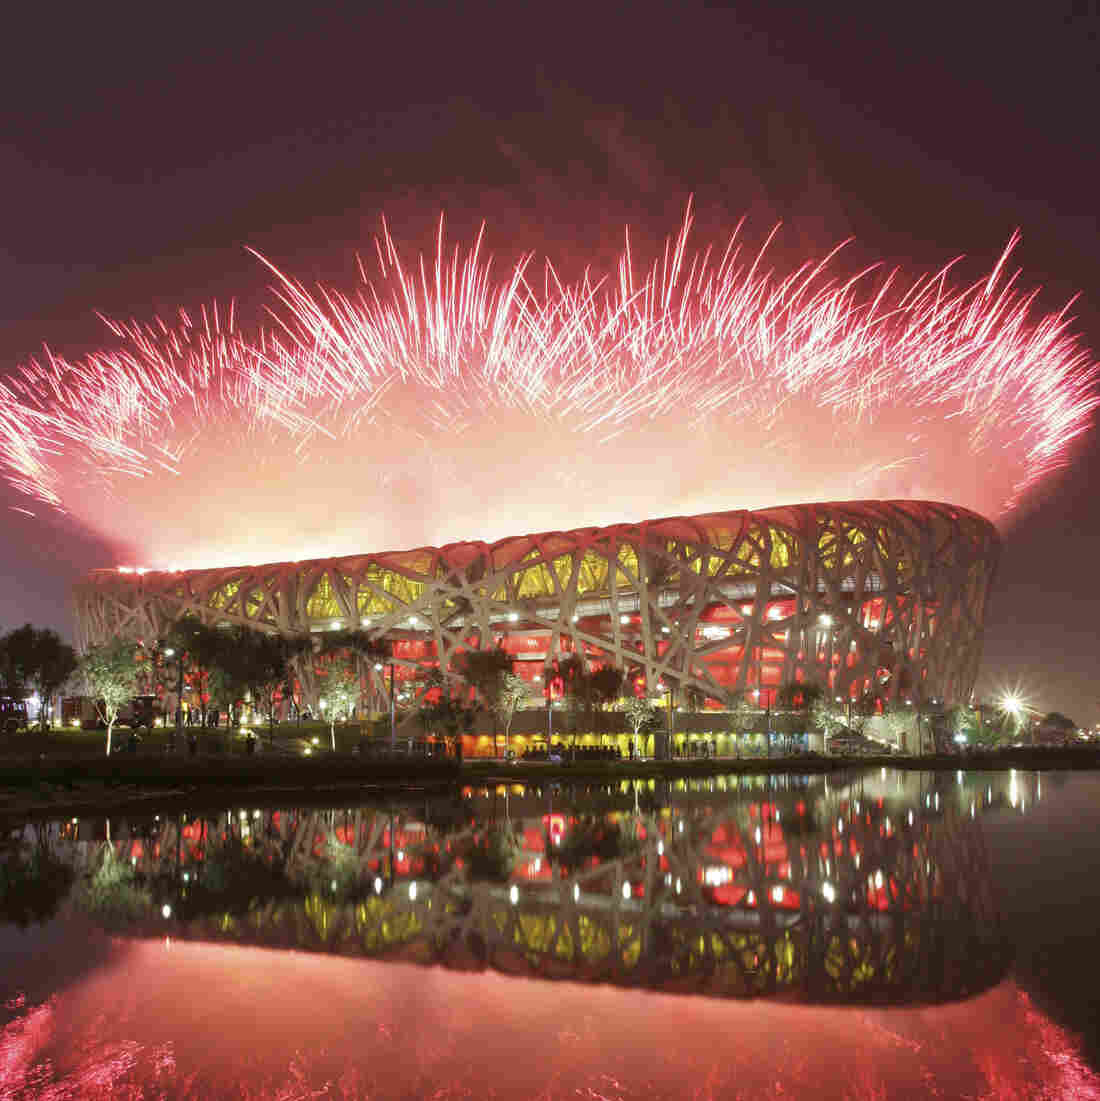 Beijing Awarded The 2022 Winter Olympic Games